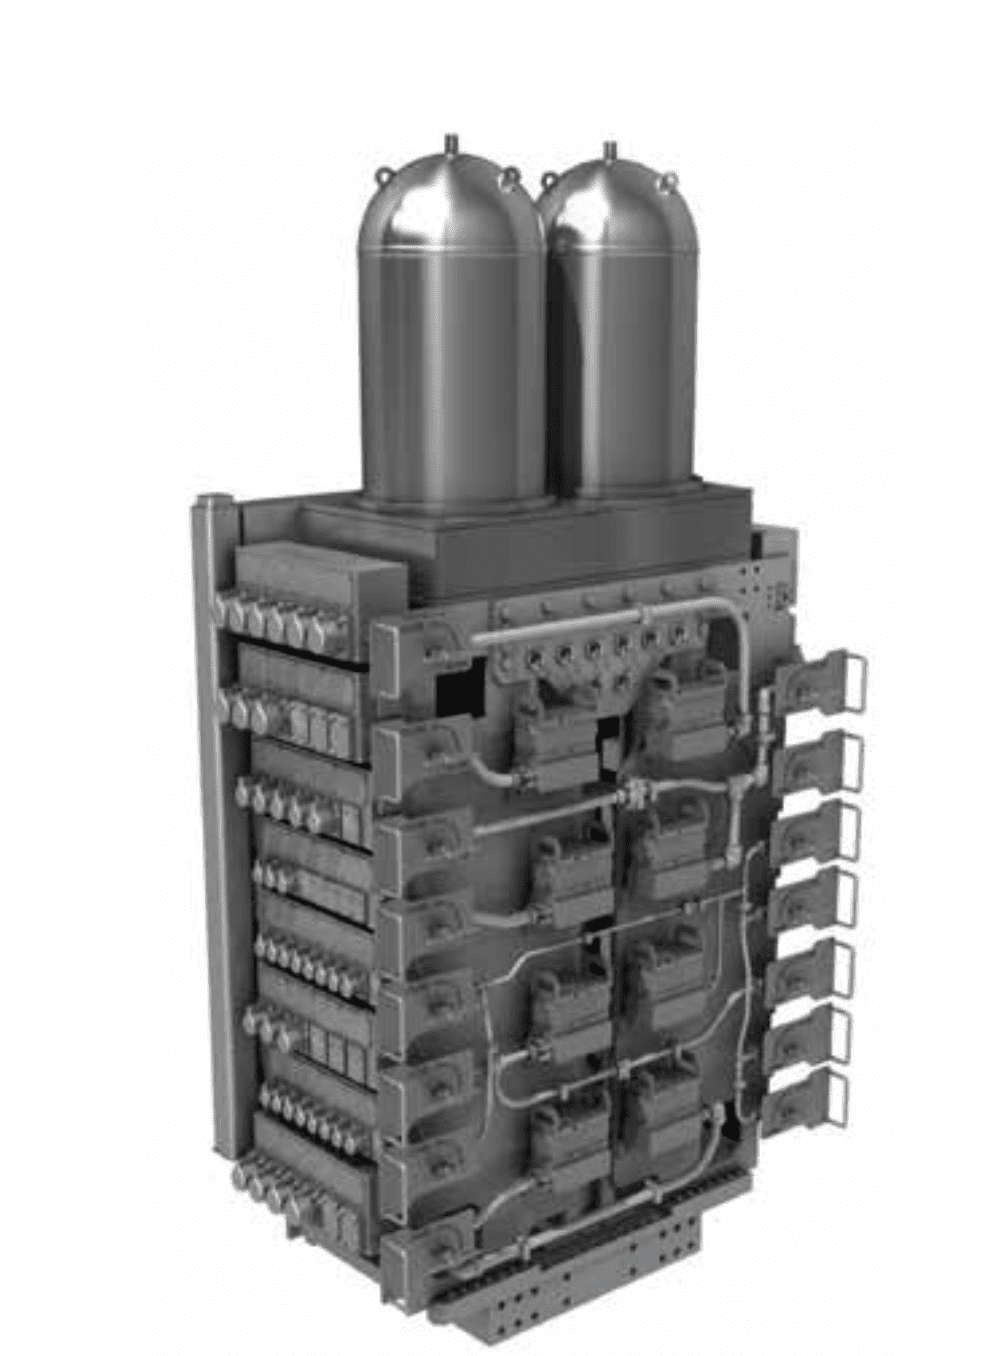 General Electric's SeaPrime blowout preventer (BOP) control system. Courtesy of GE.